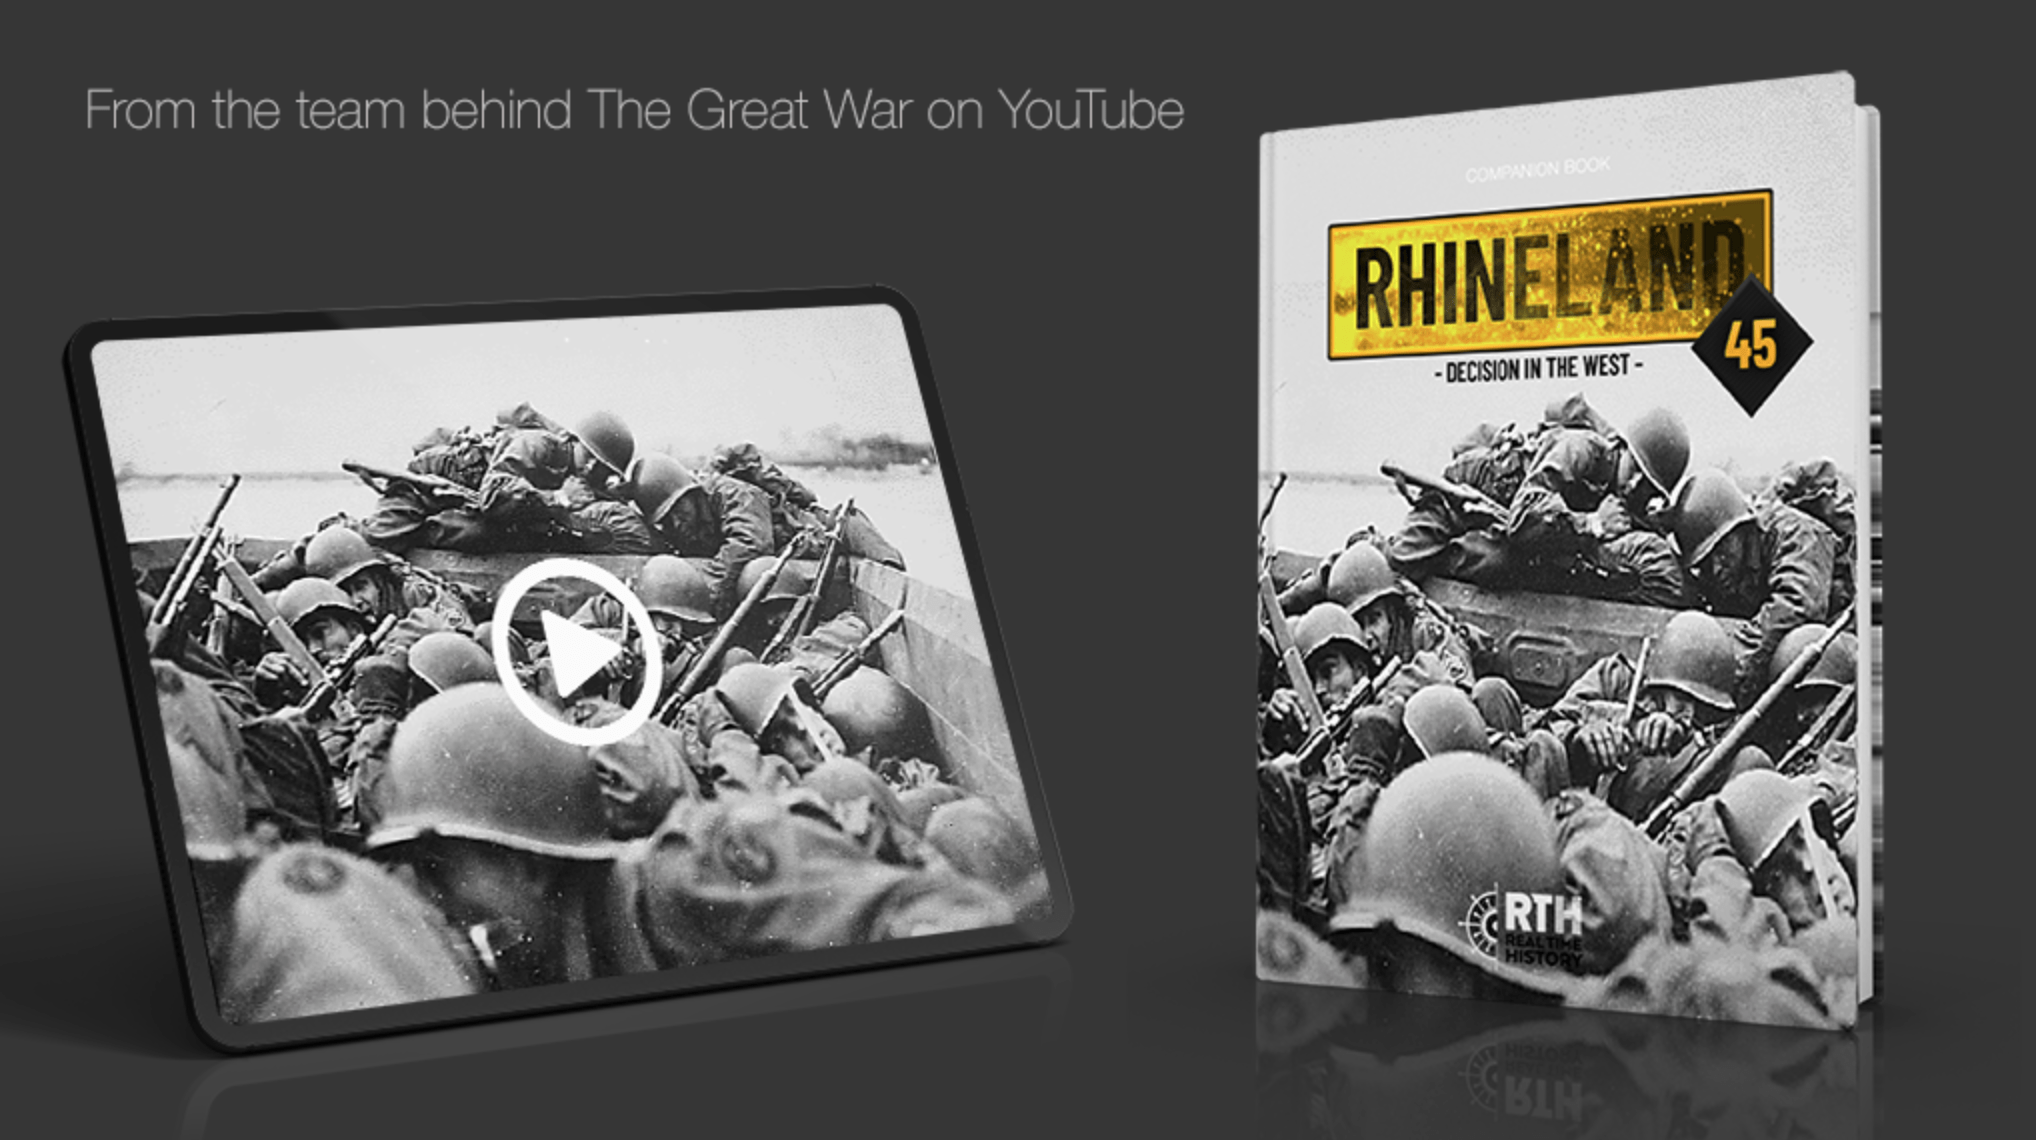 Win Battle of the Rhineland documentary prizes Giveaway Image